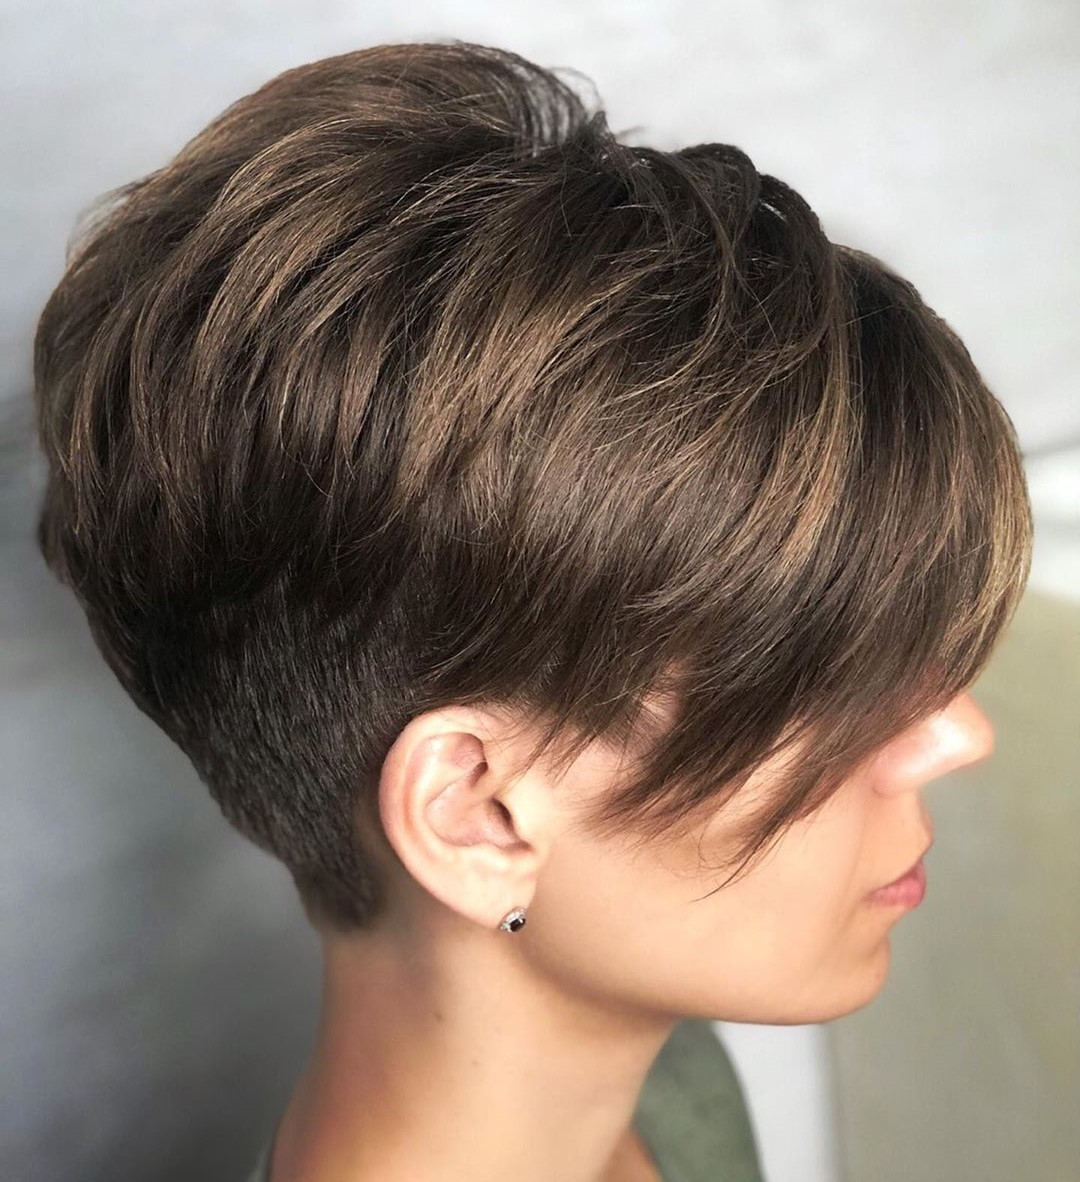 Most Current Short Feathered Bob Crop Hairstyles With 40 Short Hairstyles For Thick Hair (Trendy In 2019 (View 13 of 20)